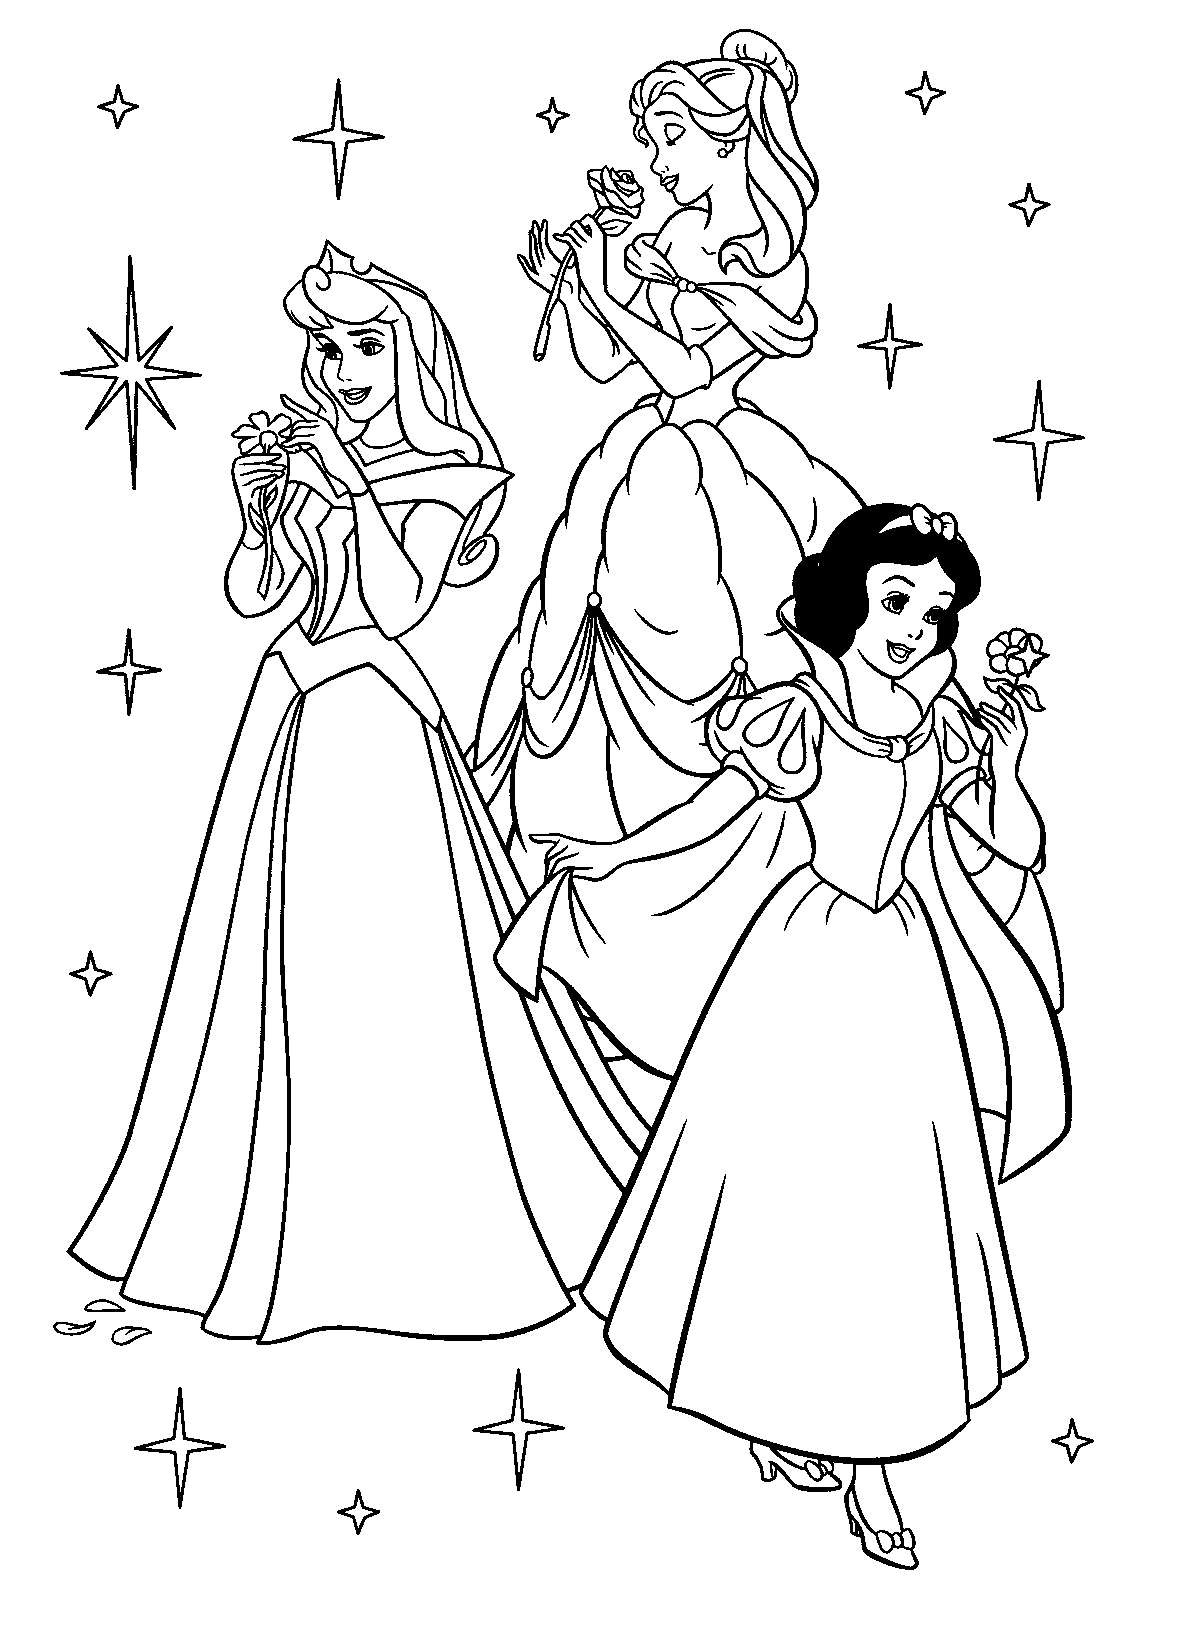 disney princesss coloring pages - photo#1